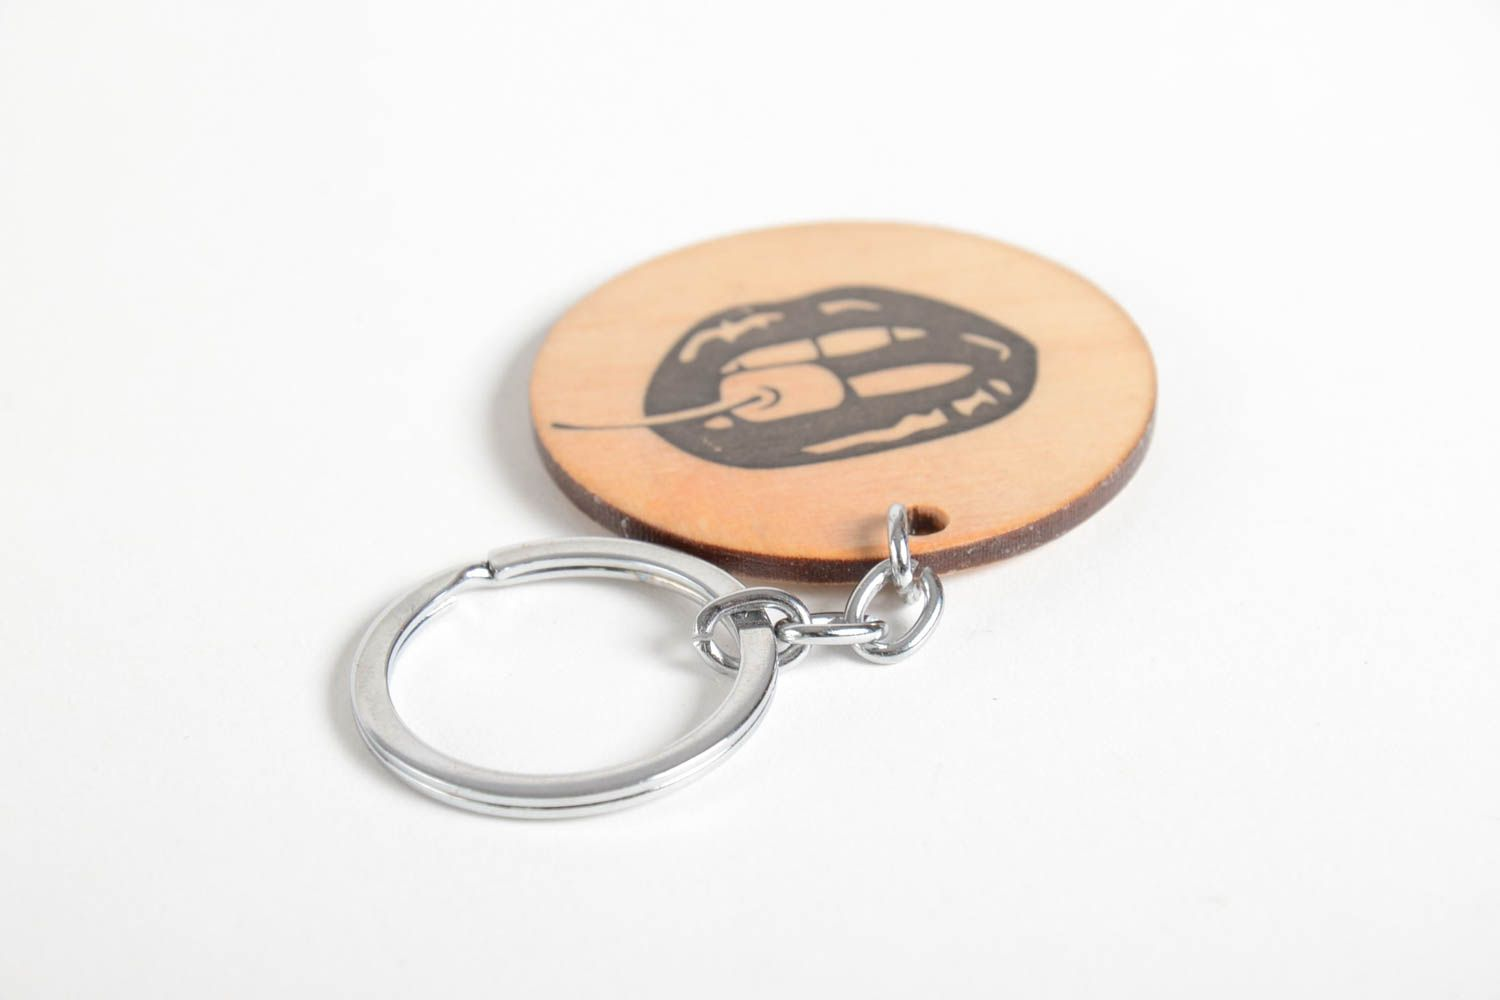 keychains Designer accessories handmade wooden key chain designer keyrings gifts for girls - MADEheart.com